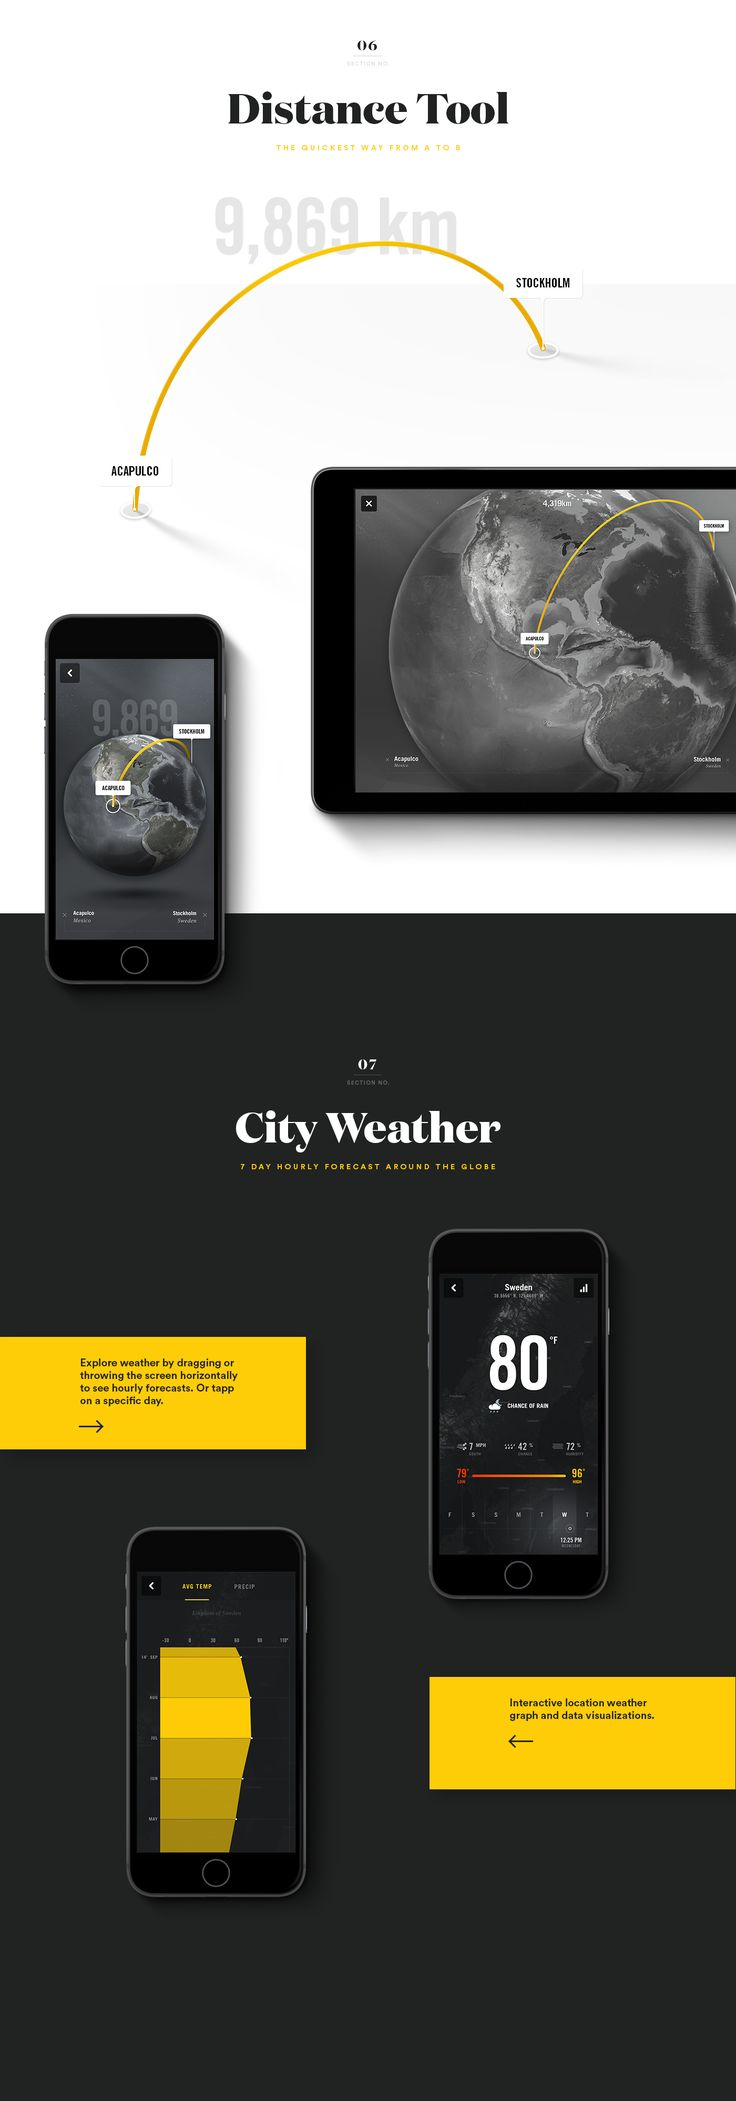 National Geographic World Atlas iOS App concept, design and developing by Really Interactive on Behance.